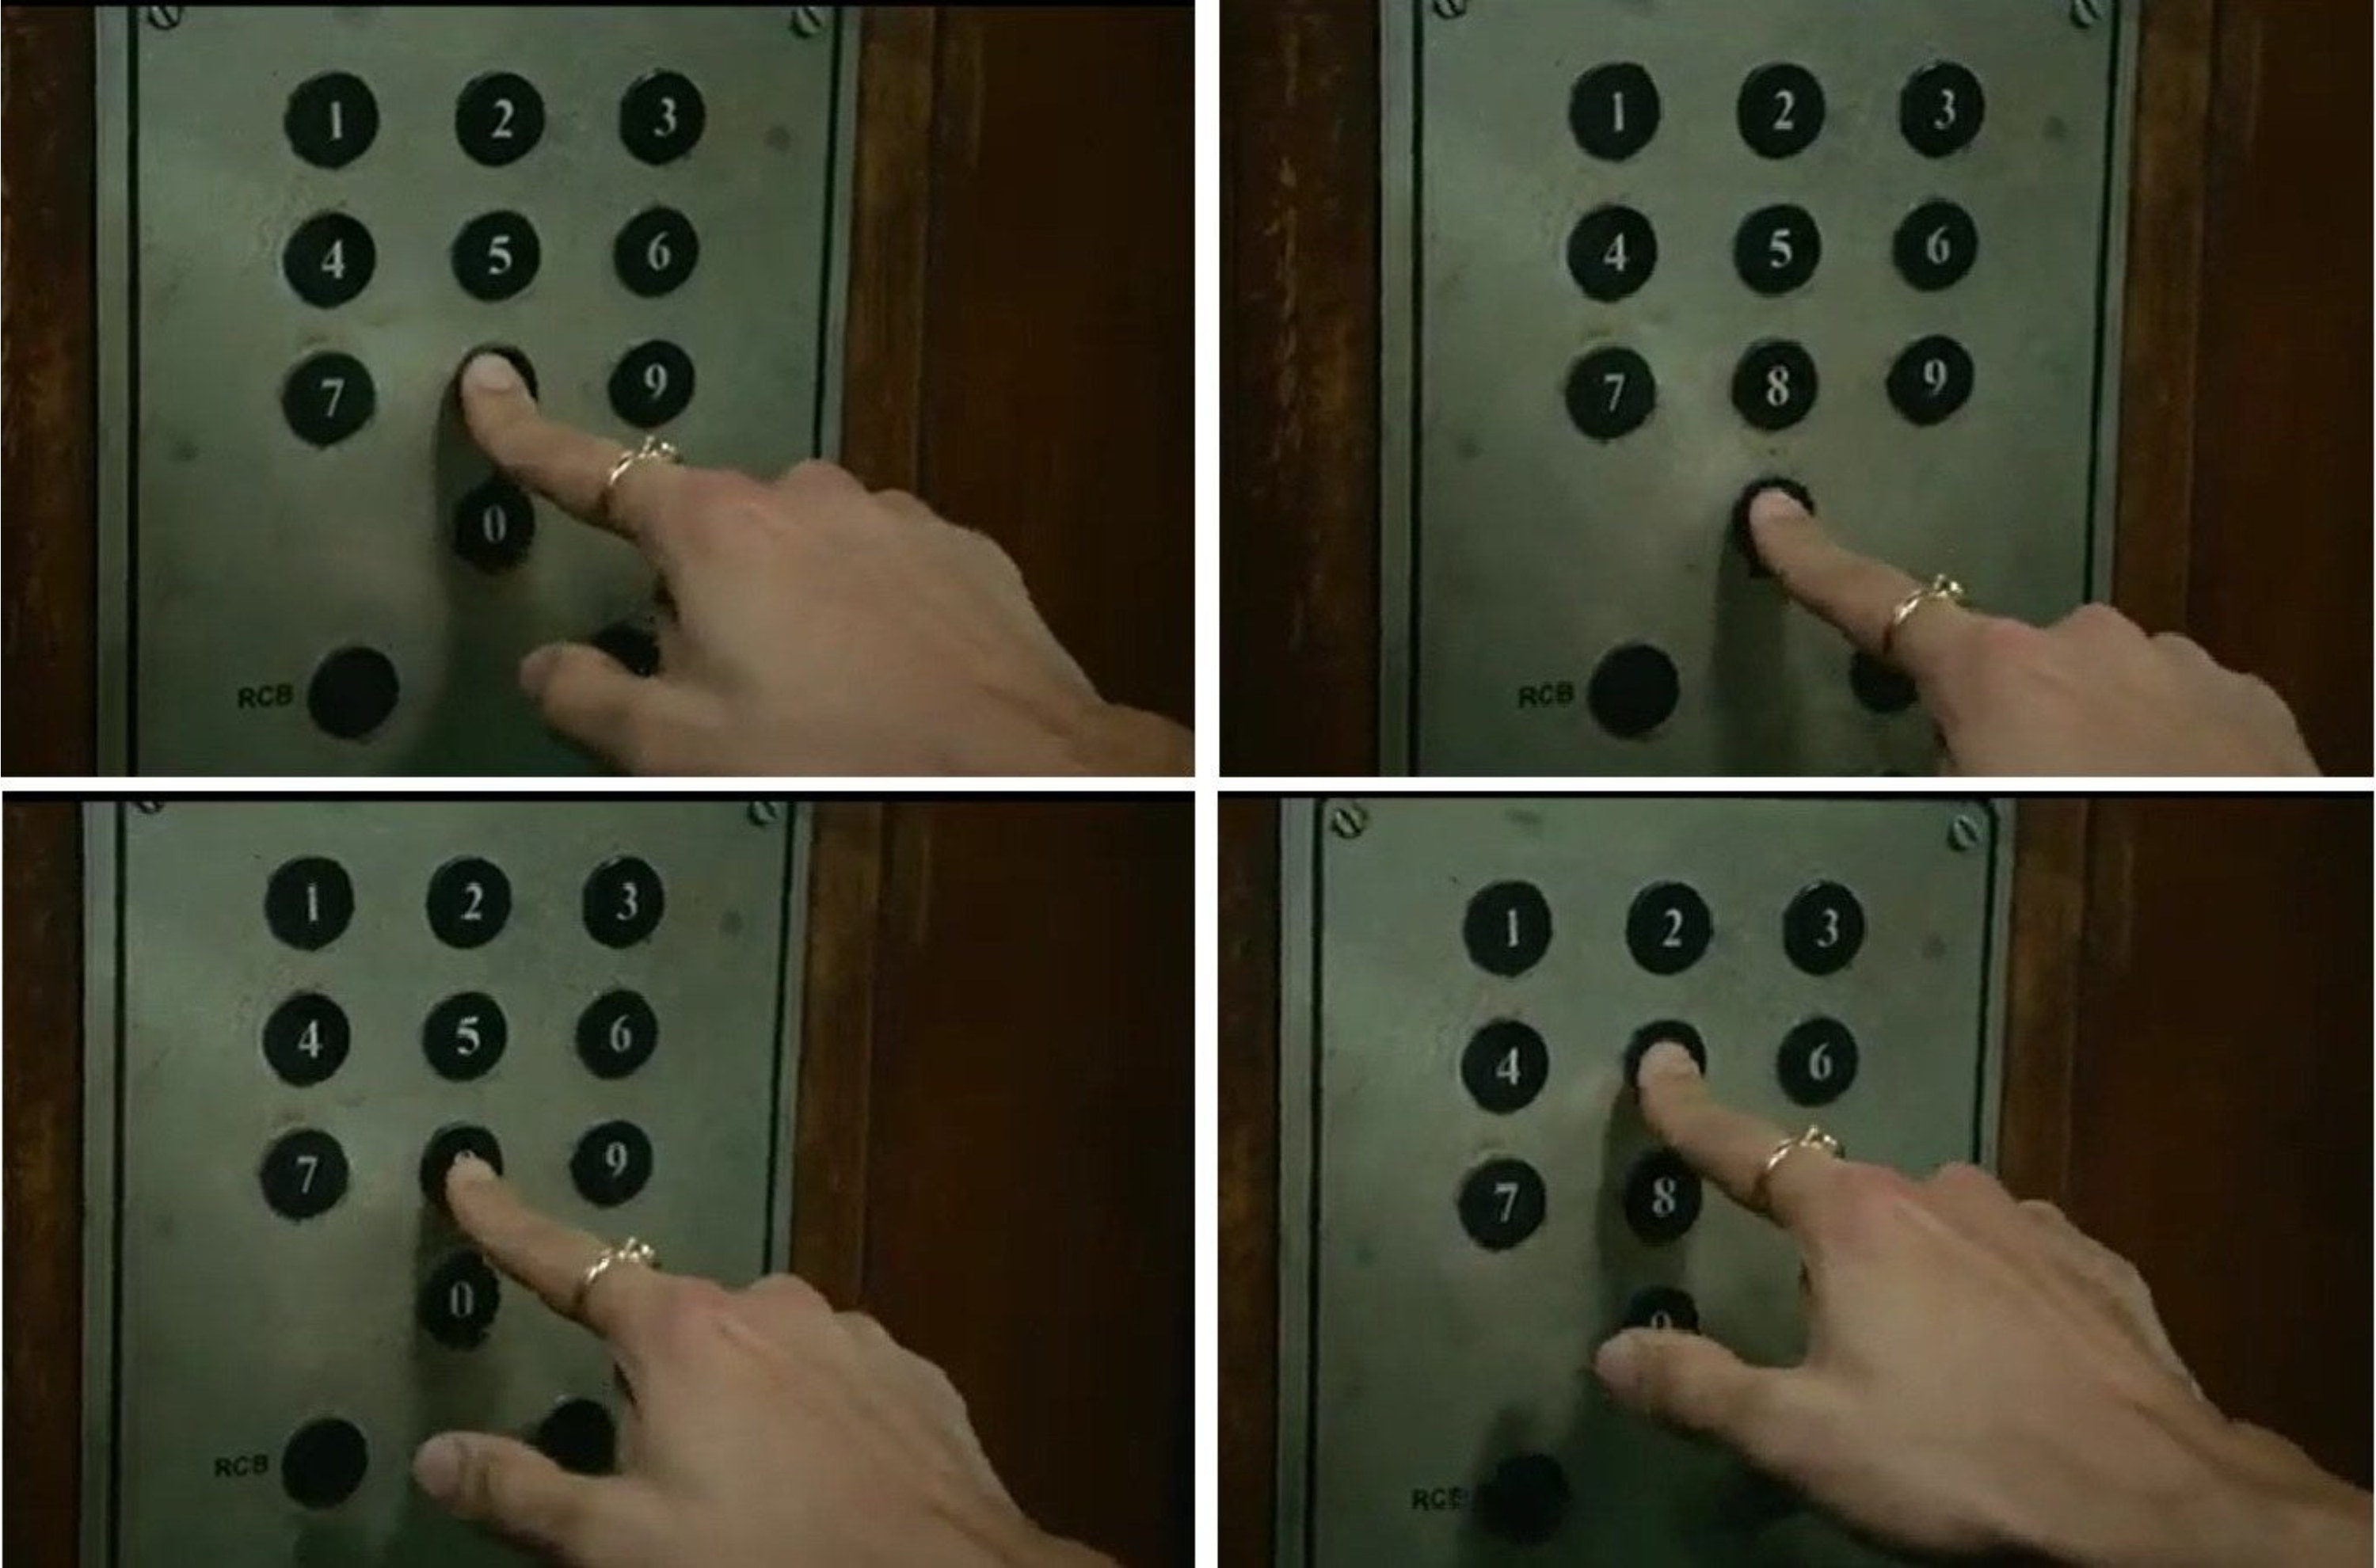 Images that show tiger shroff pressing the said numbers